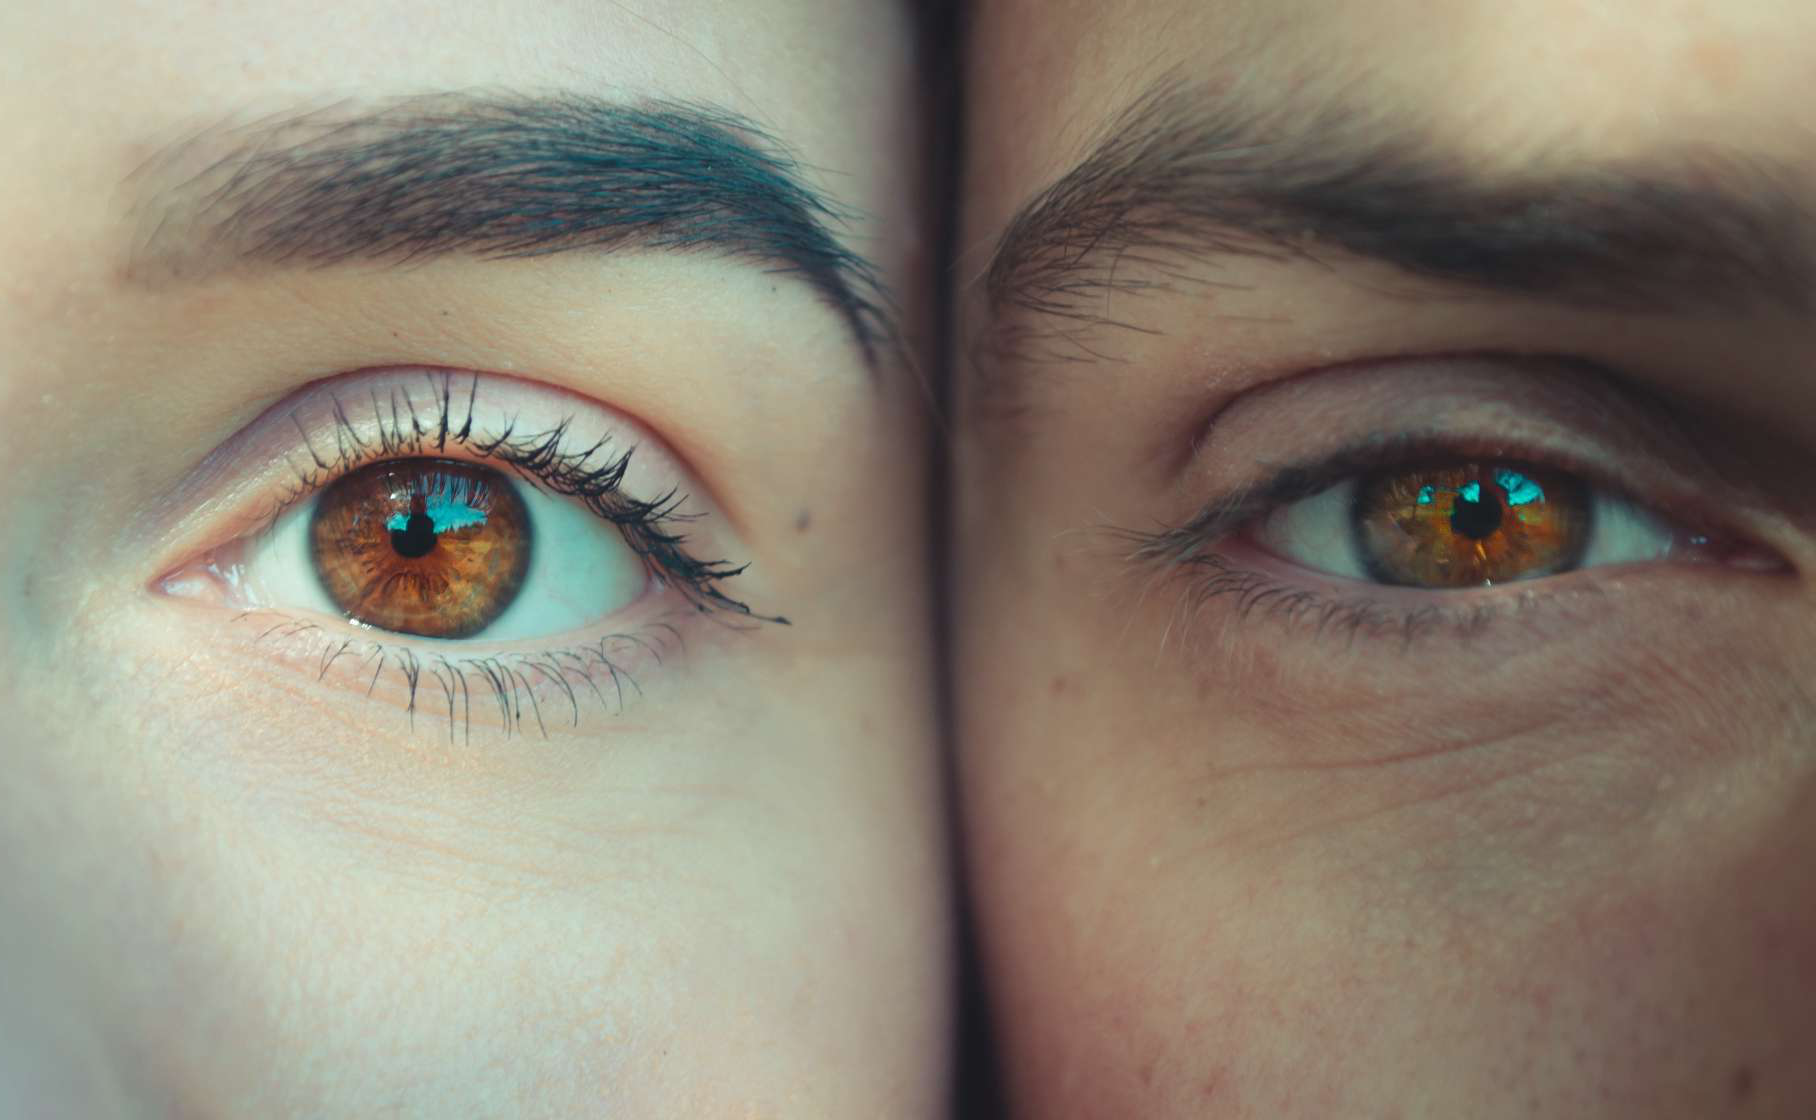 two eyes from two people